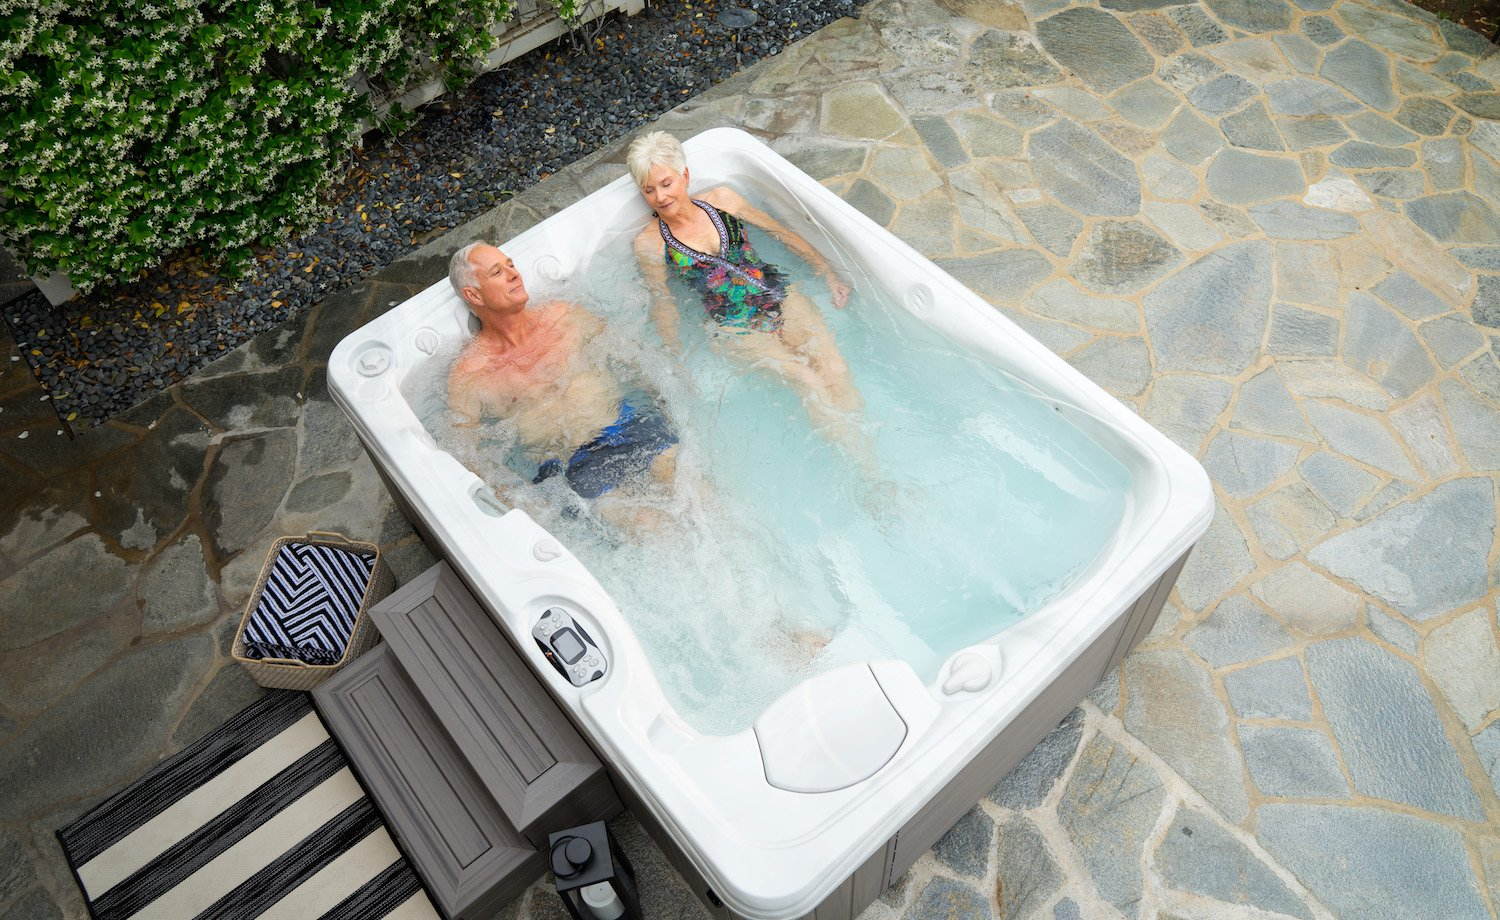 What Are Typical Hot Tub Dimensions? - Caldera Spas